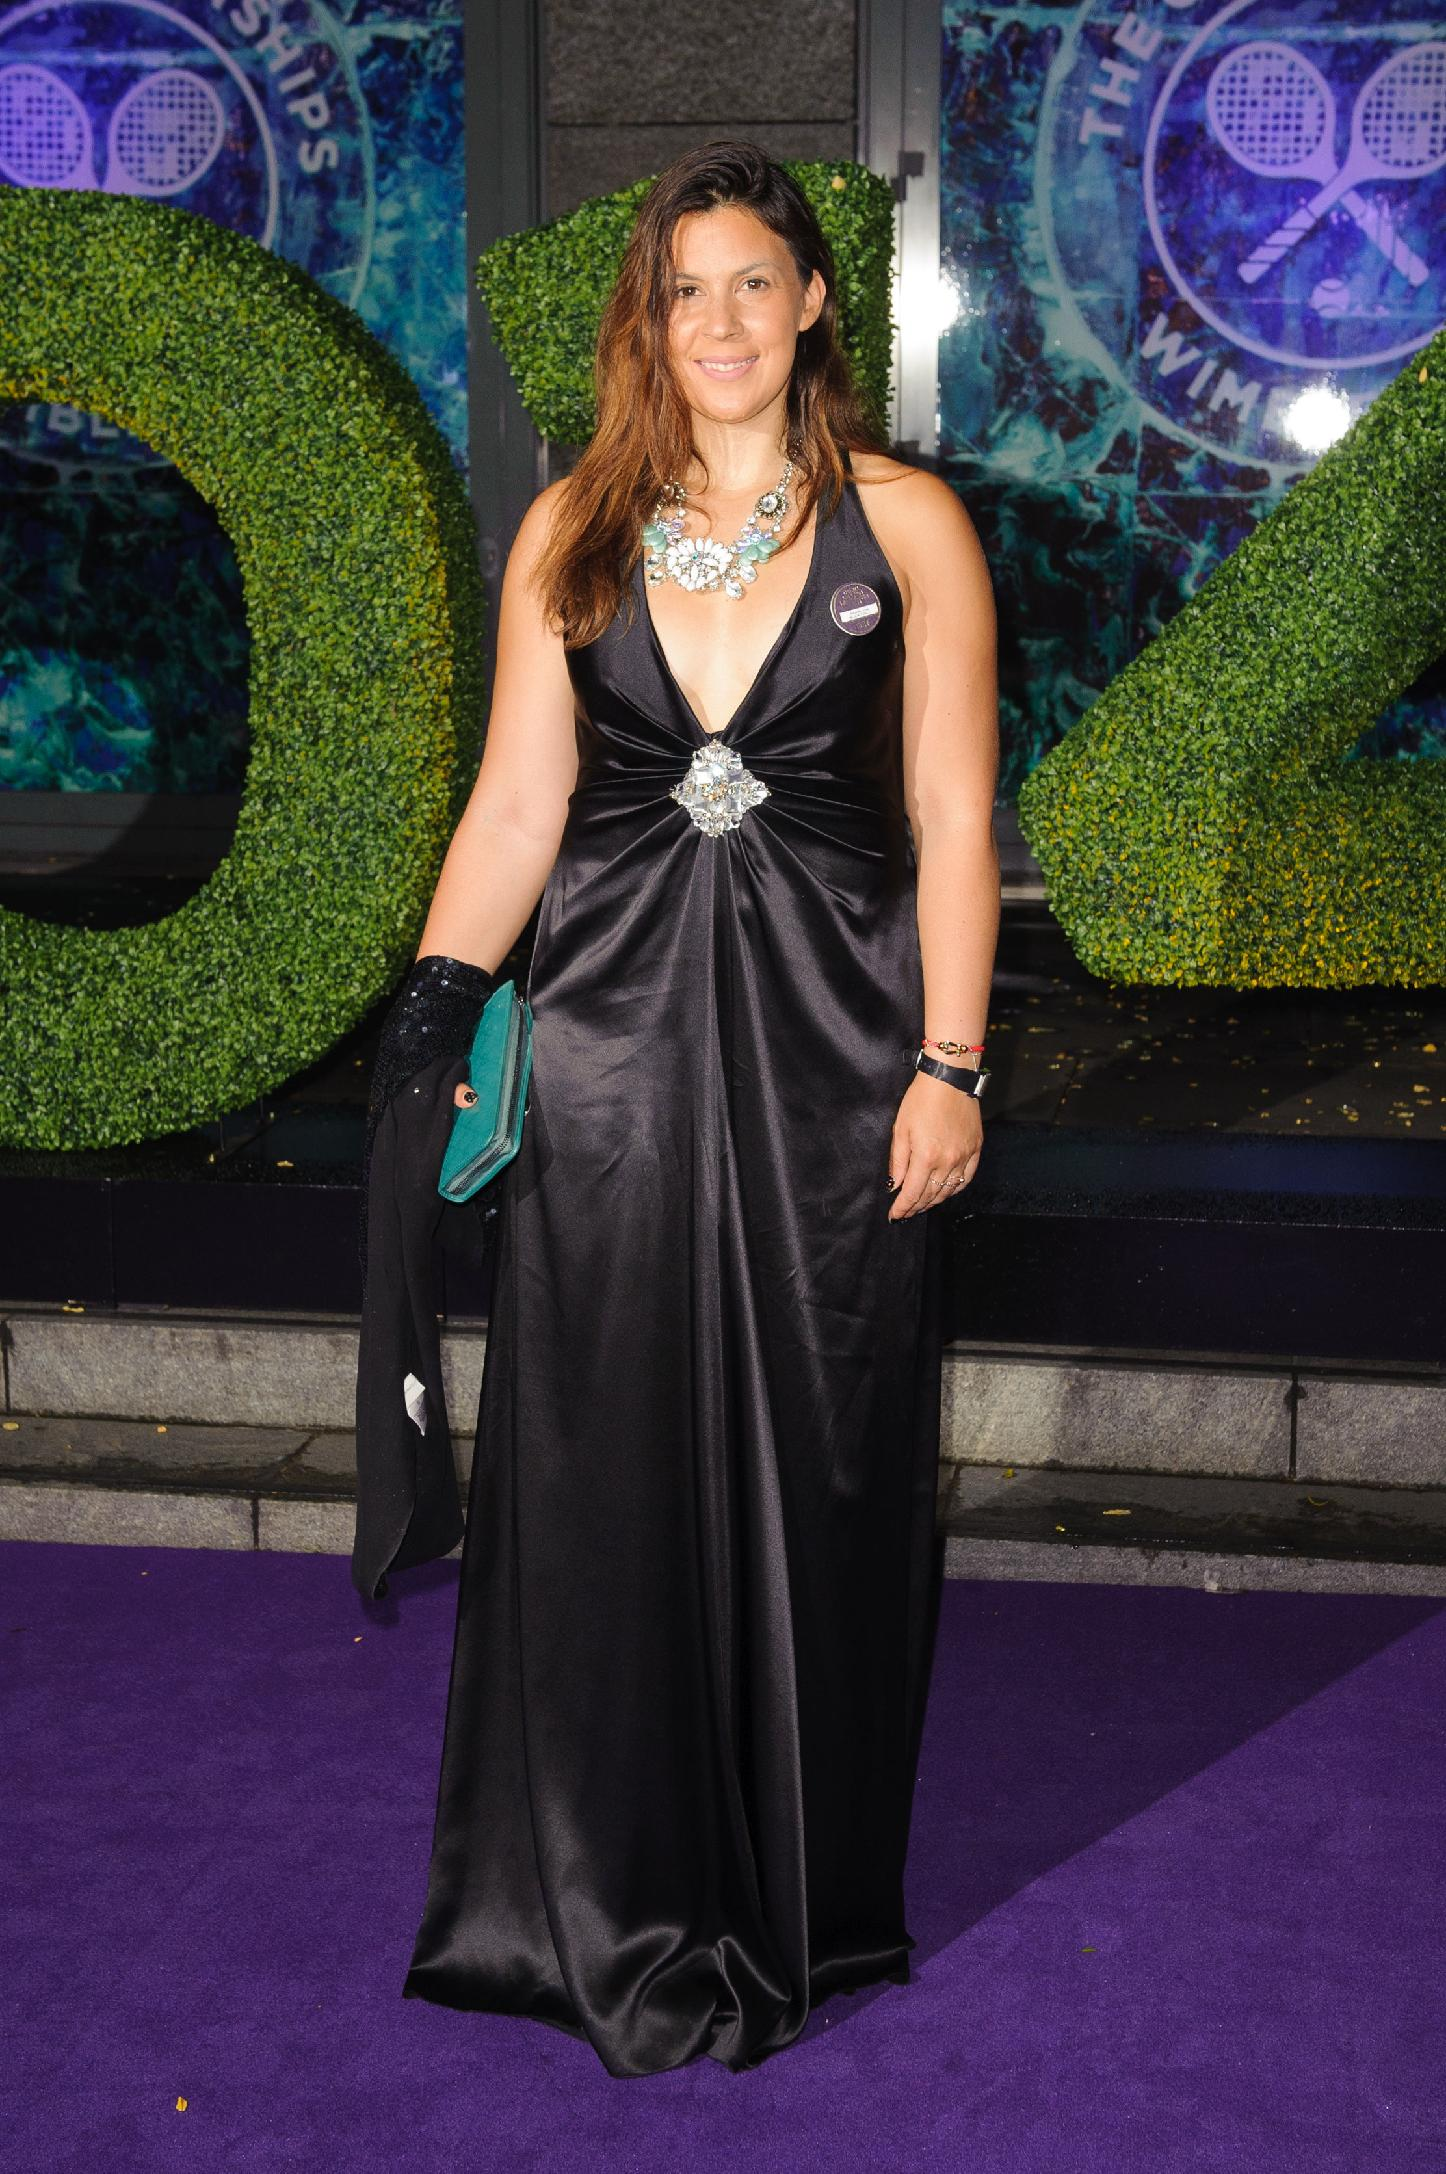 Marion Bartoli arriving at the Wimbledon Champions Dinner 2014, at the Royal Opera House, in Covent Garden, London, Sunday July 6, 2014